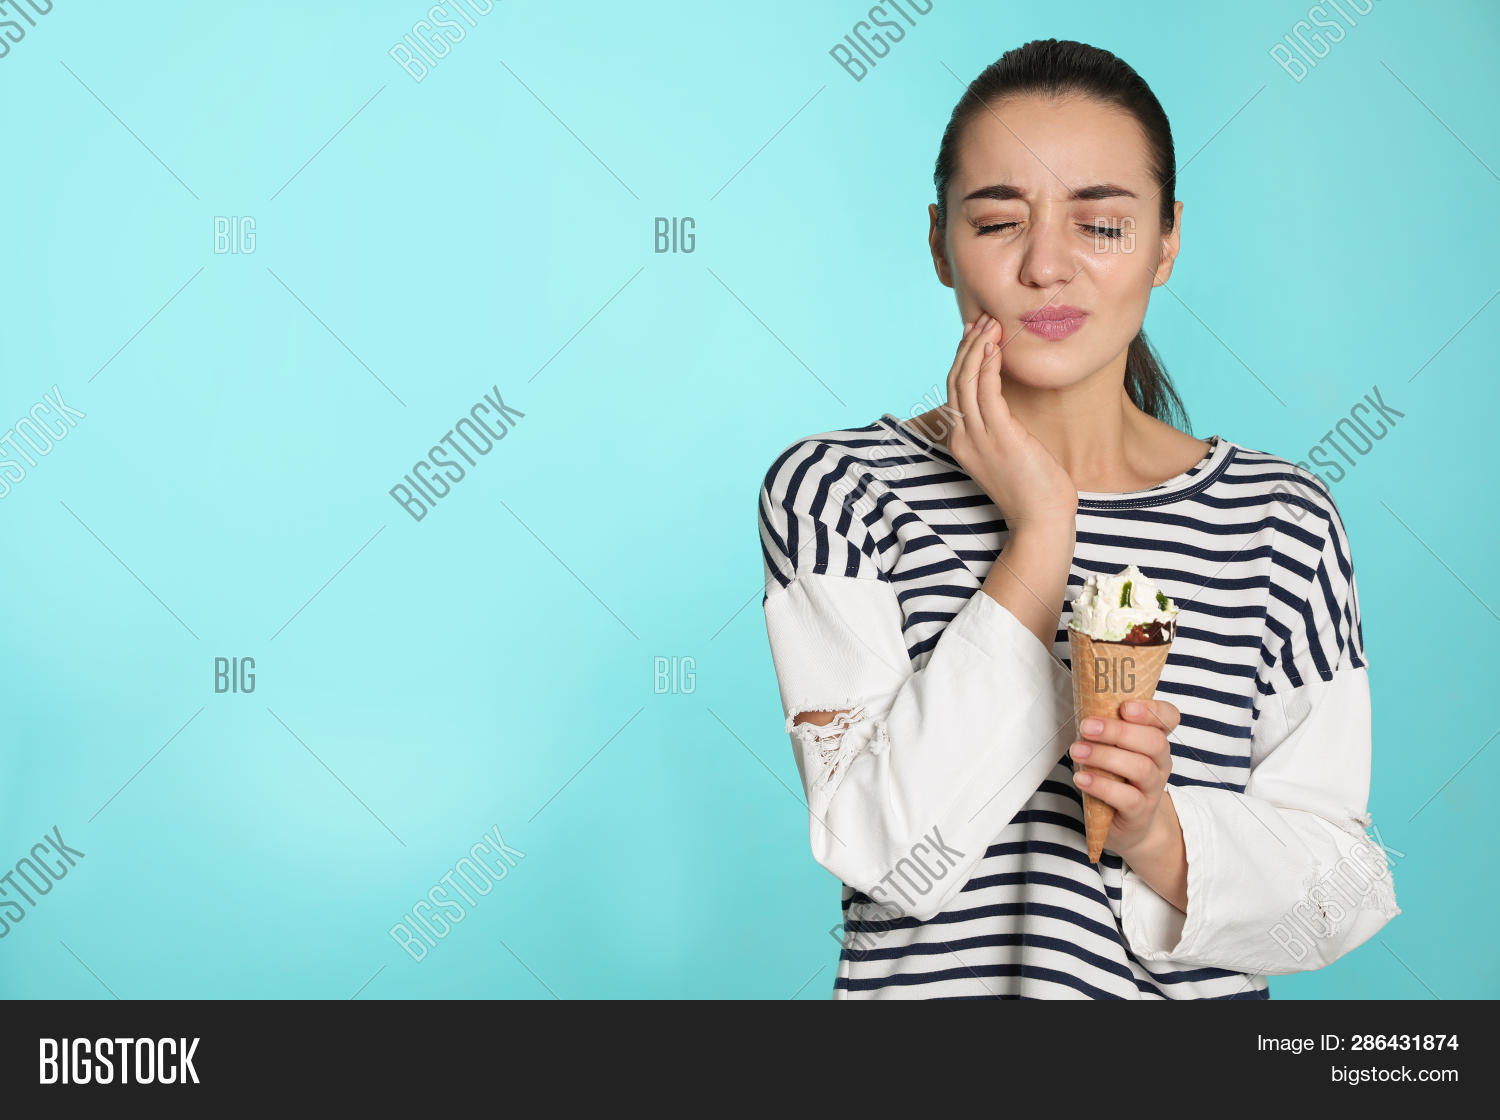 ache,adult,background,bad,blue,care,caries,caucasian,cavity,cold,color,cone,copy,cream,dental,dessert,discomfort,disease,eat,emotional,feel,female,food,health,hurt,hygiene,ice,medical,medicine,oral,pain,painful,person,portrait,problem,sad,sensitive,sore,space,suffering,sweet,symptom,teeth,text,tooth,toothache,treatment,upset,woman,young